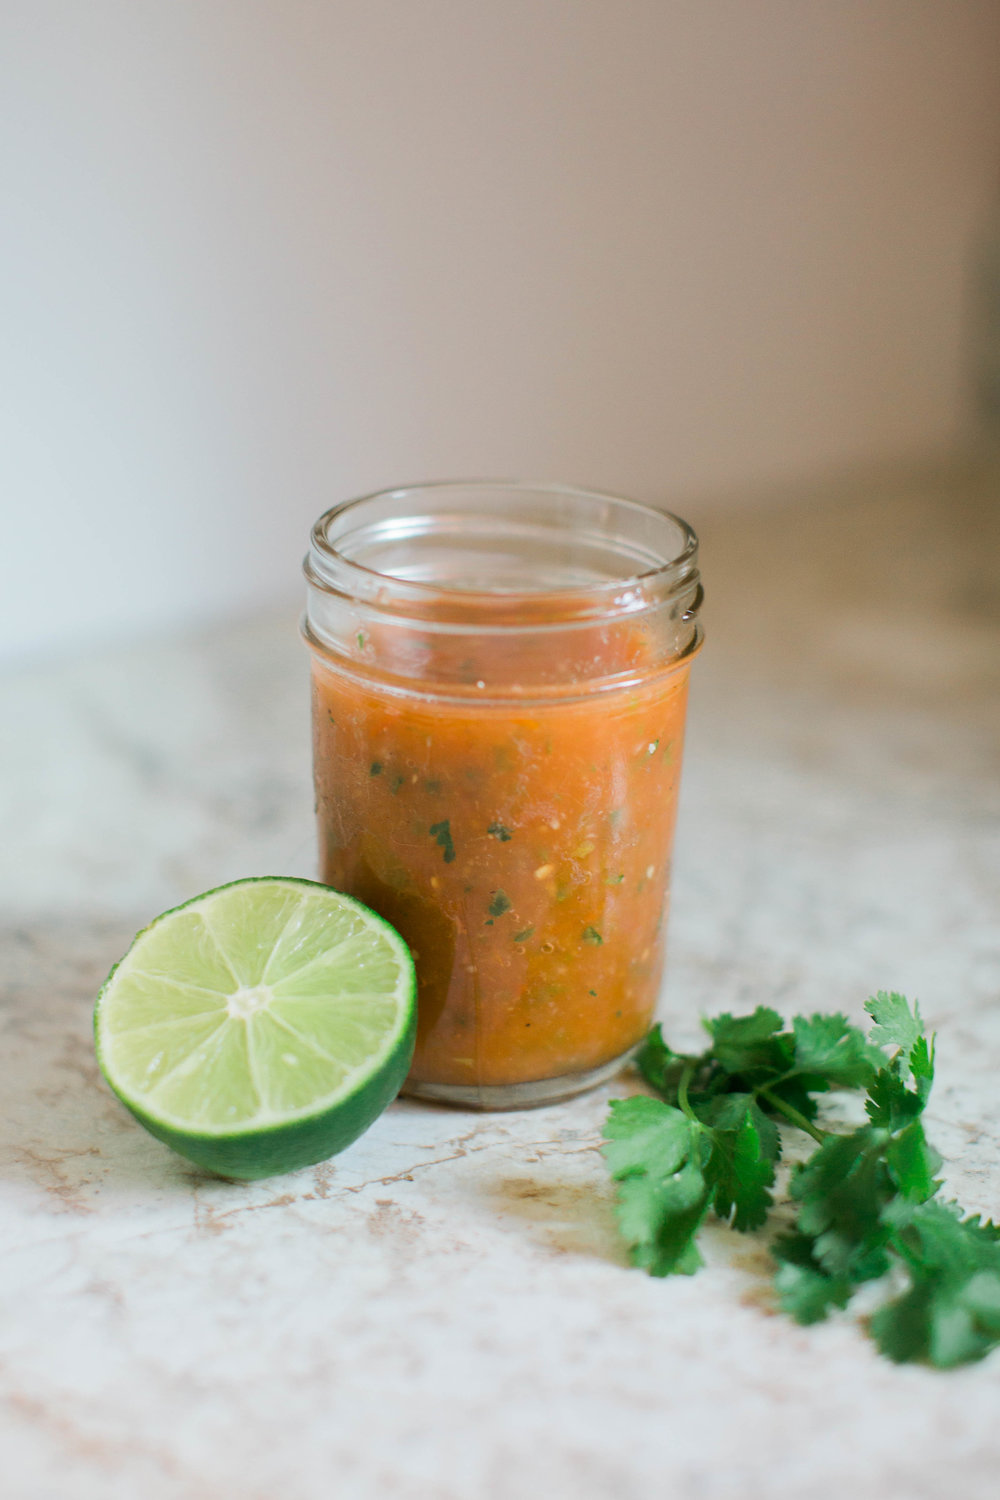 jennahazelphotography-super-simple-salsa-6551.jpg